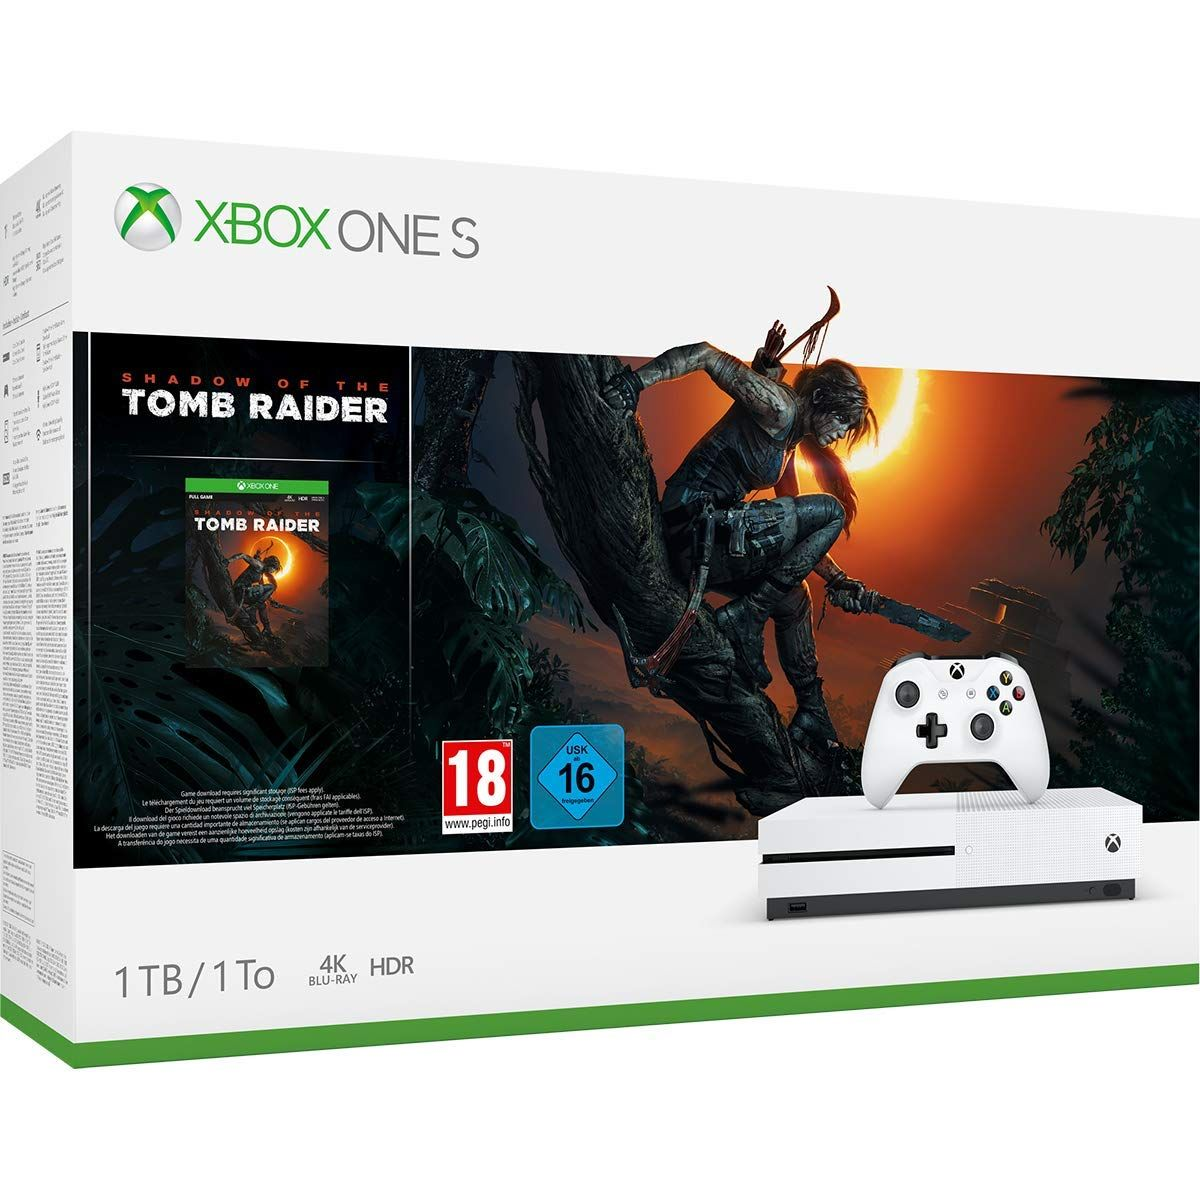 Xbox One S 1TB + Shadow of the Tomb Raider - 1